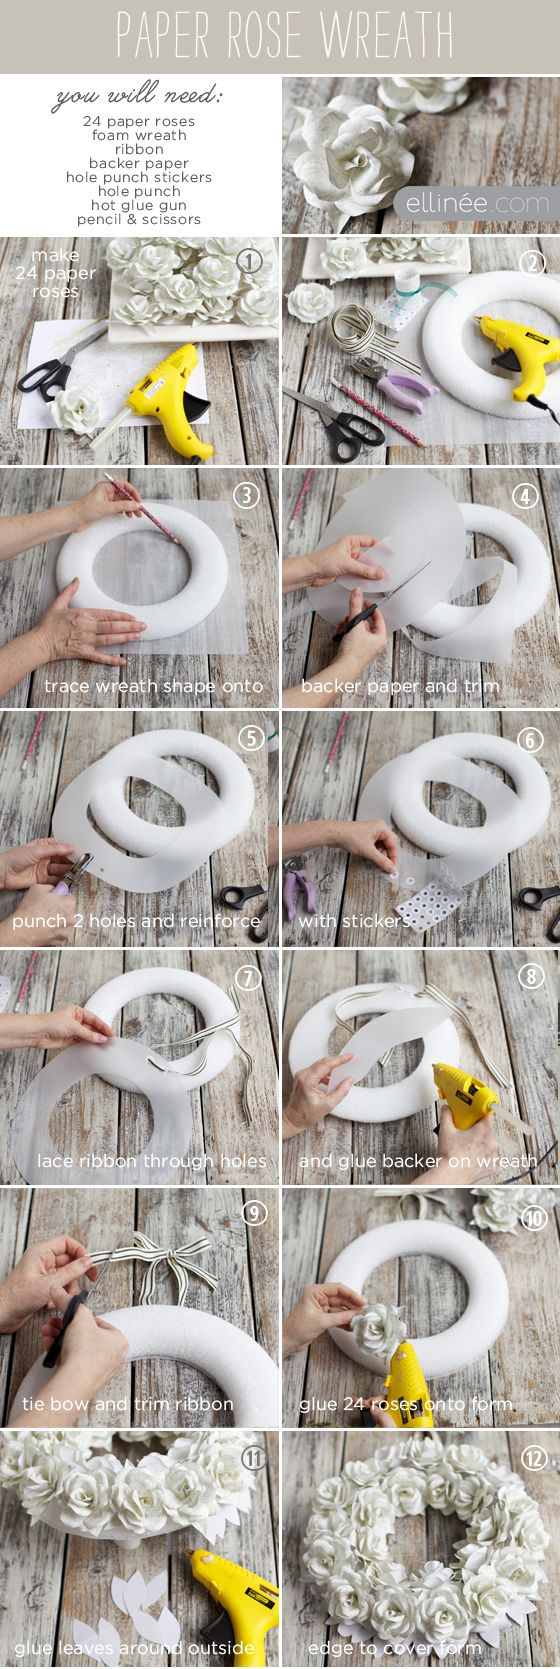 Tutorial:  How to make a paper rose wreath.  Site includes instructions for making the paper roses. - from elinee handcraft your life